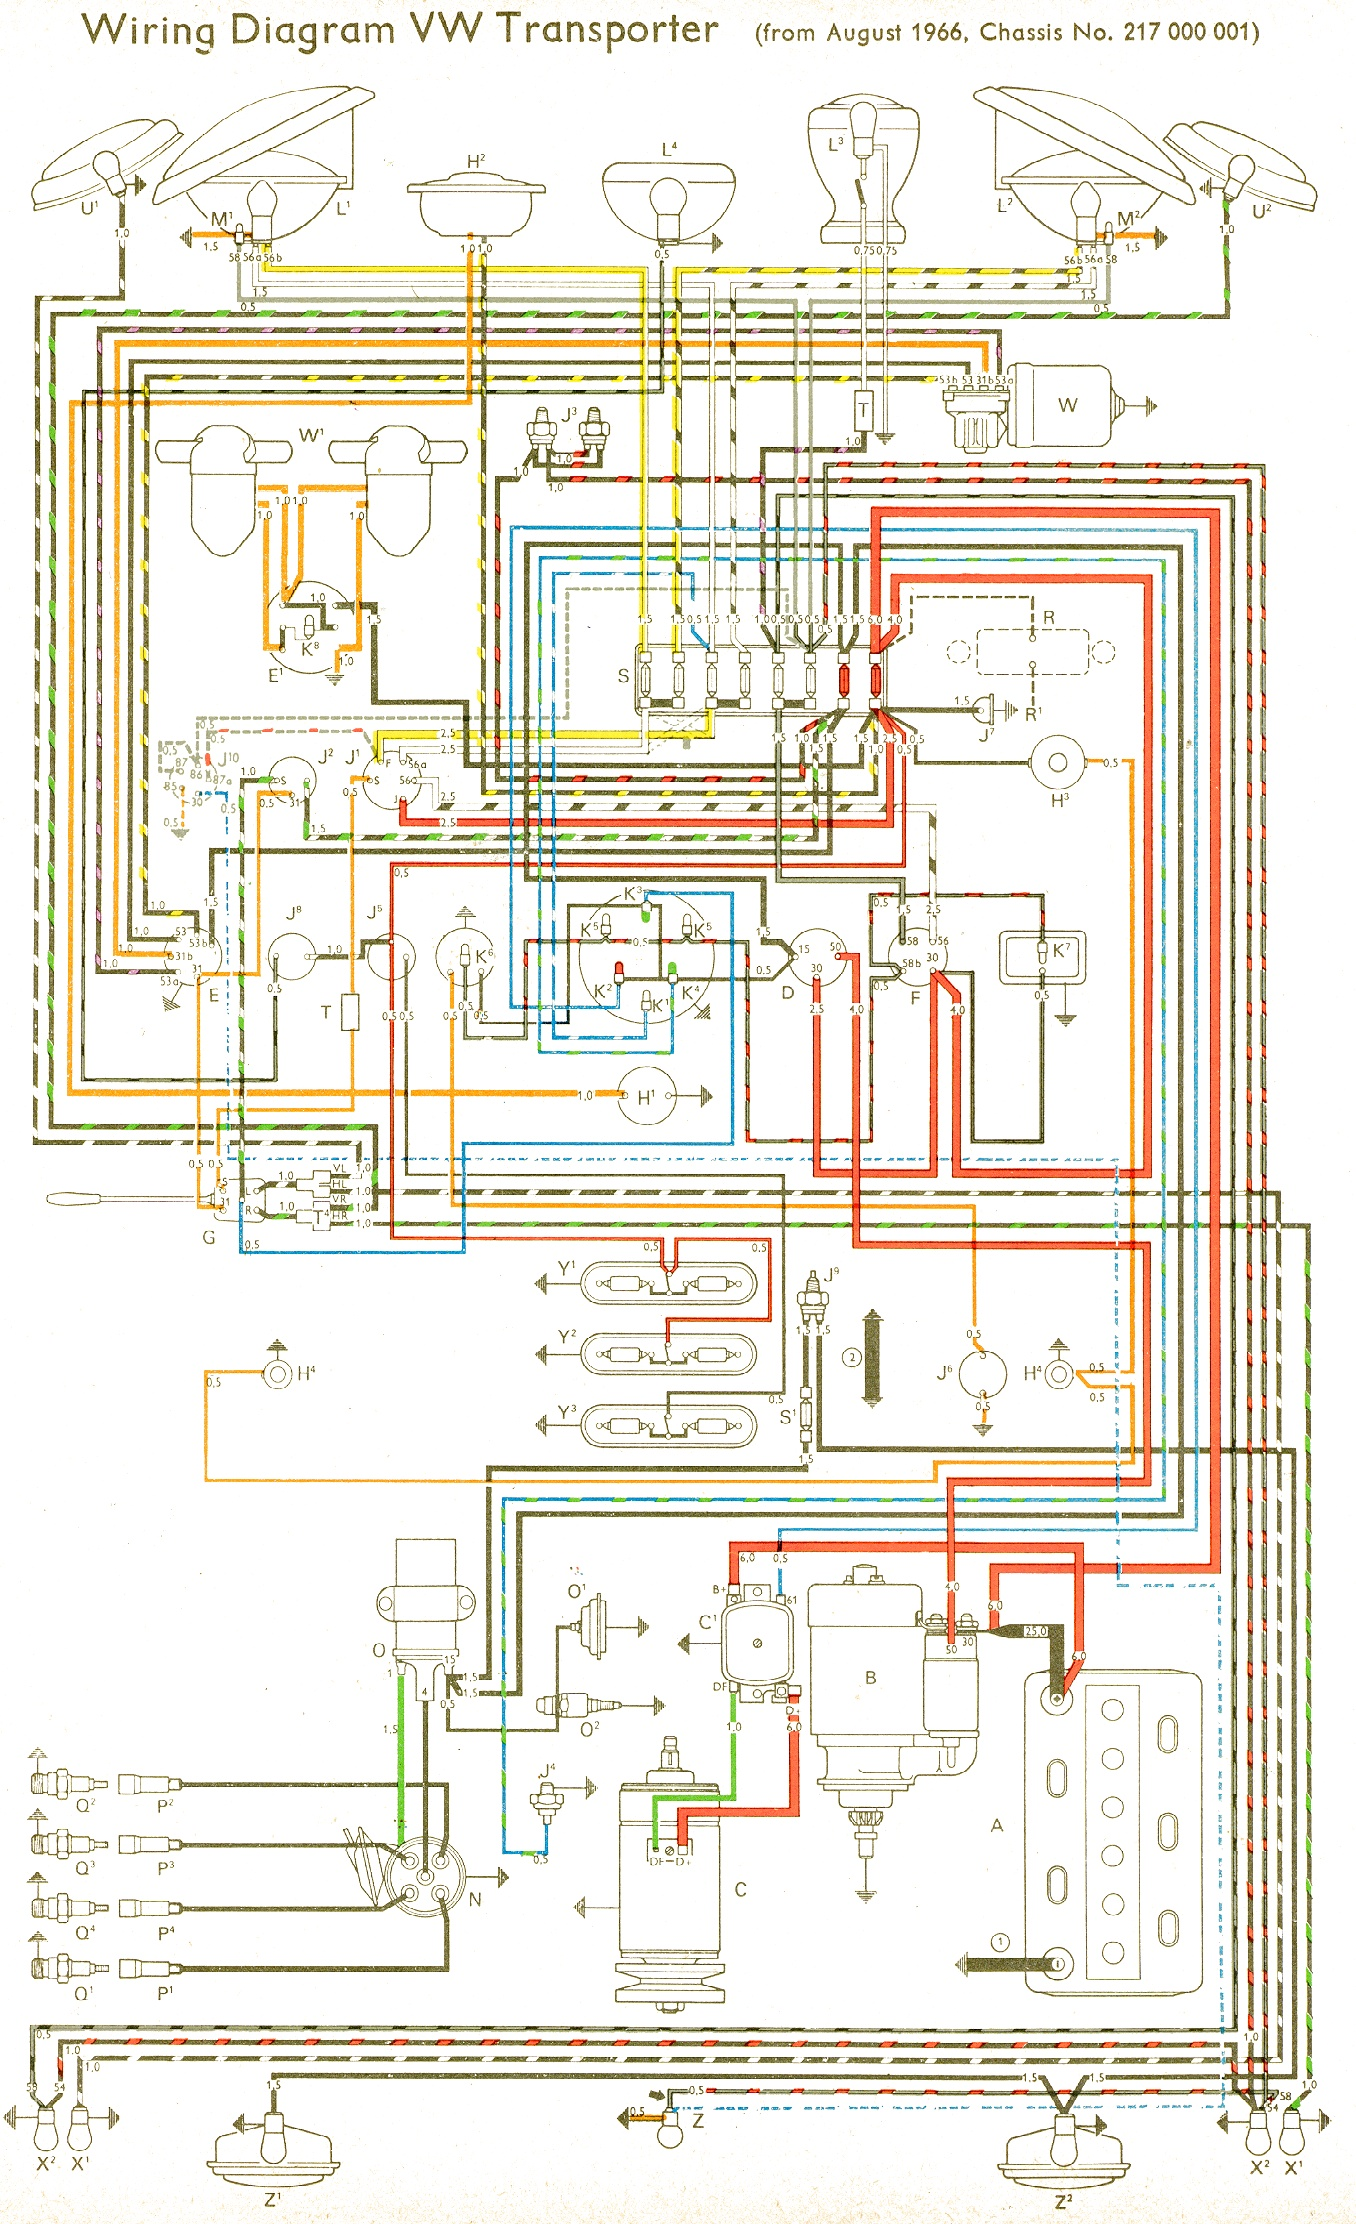 bus 66 bus wiring diagram vw wiring harness diagram \u2022 wiring diagrams j 69 vw wiring harness at reclaimingppi.co